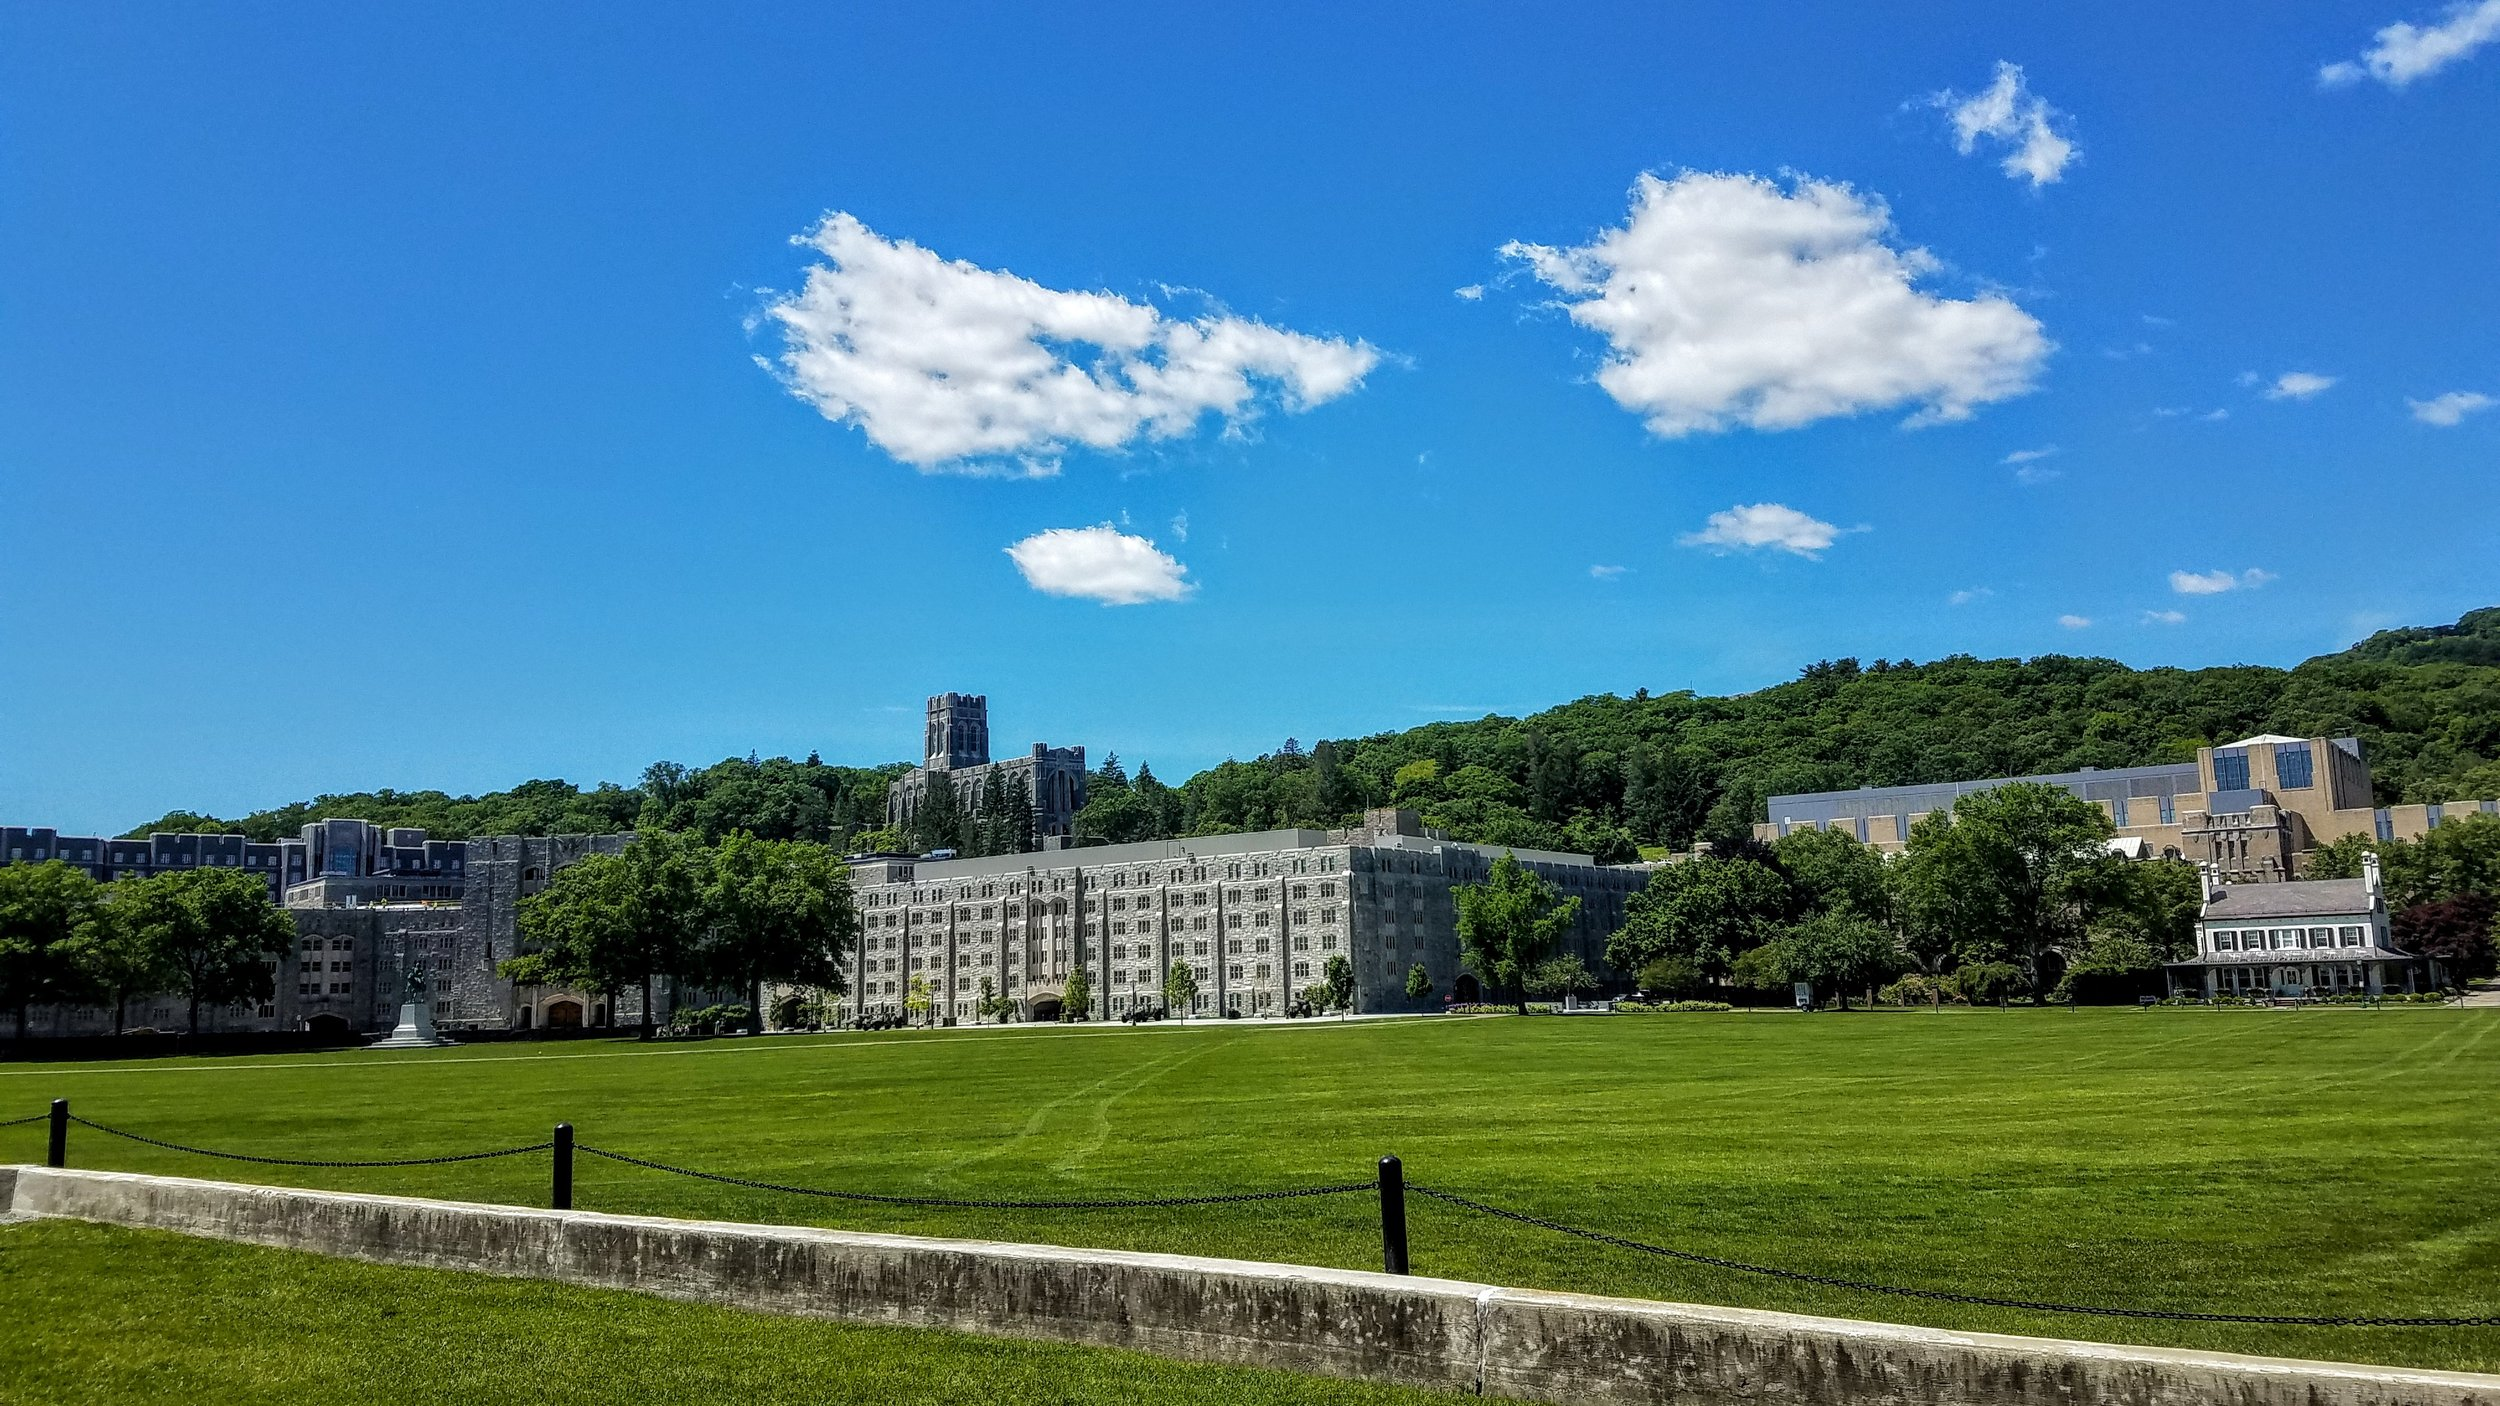 West point campus. The Chapel above, barracks and parade grounds below